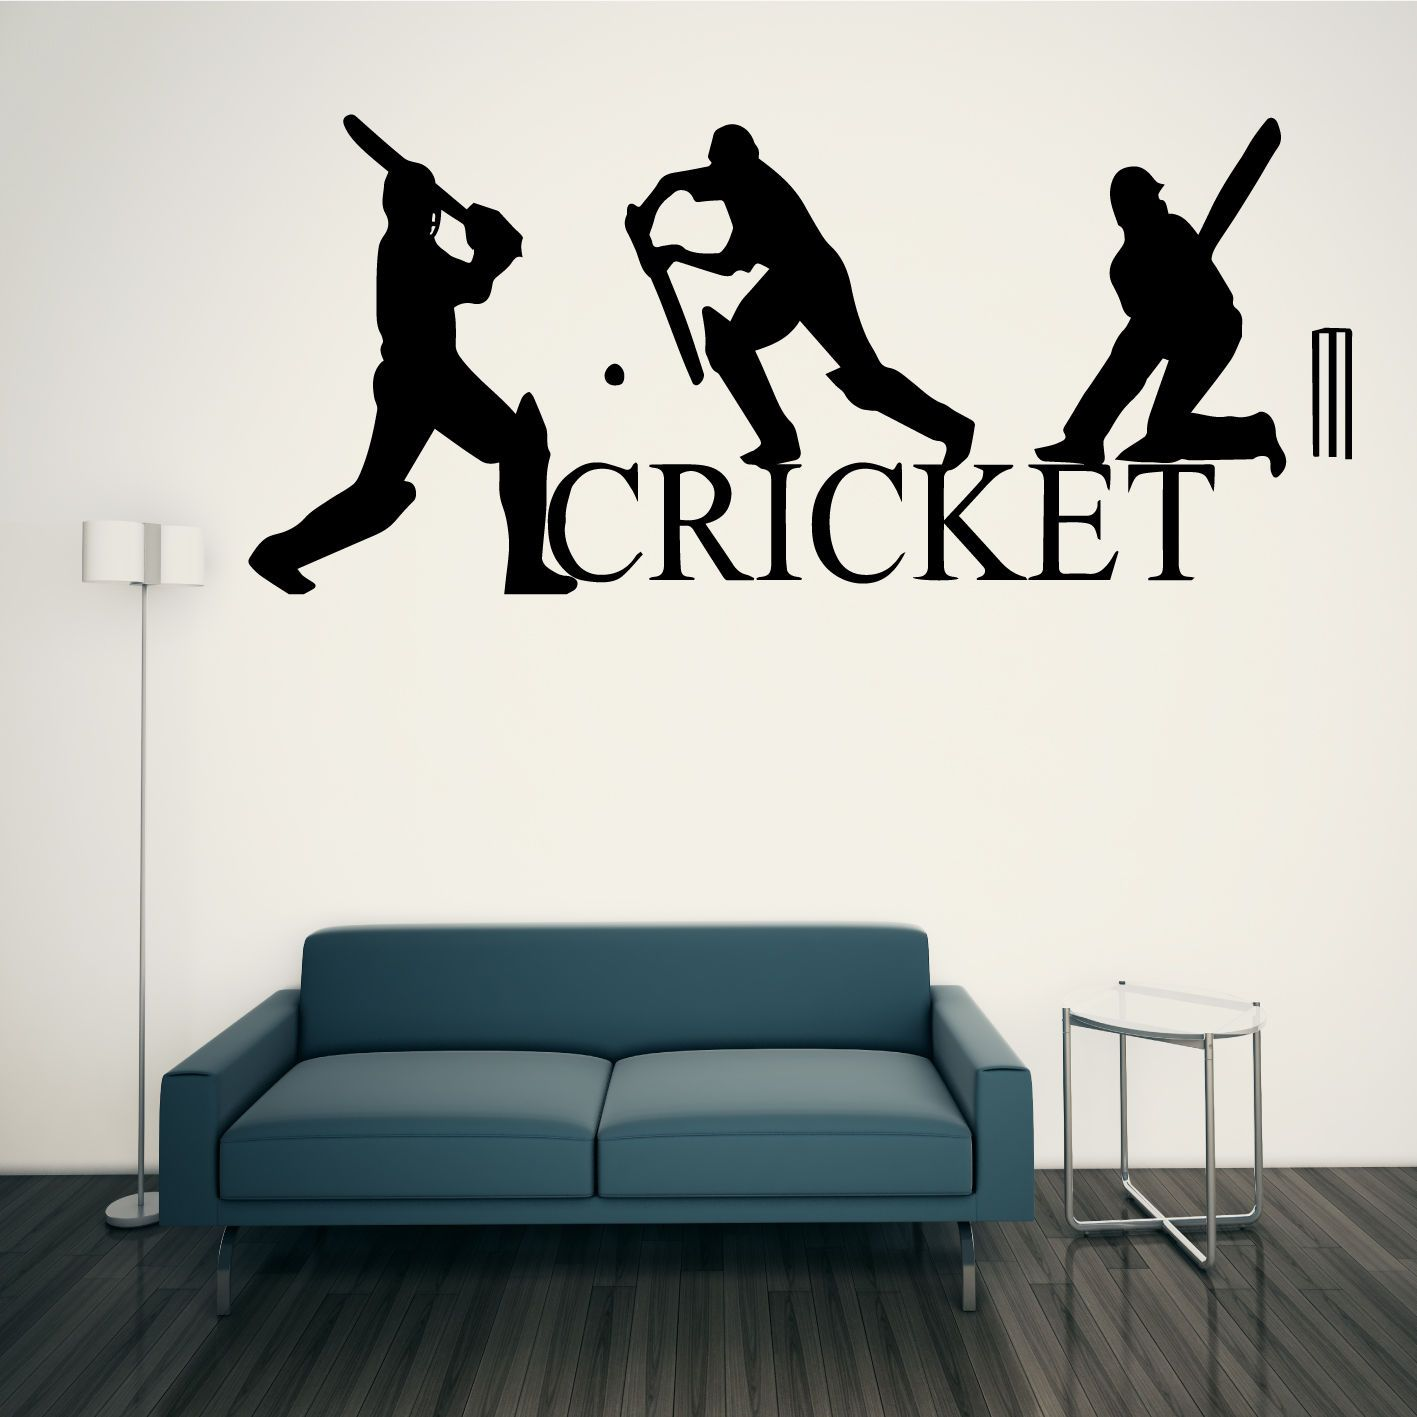 CRICKET WALL ART STICKER SPORT CRICKETERS GRAPHICS TRANSFER In Home,  Furniture U0026 DIY, Home Good Looking